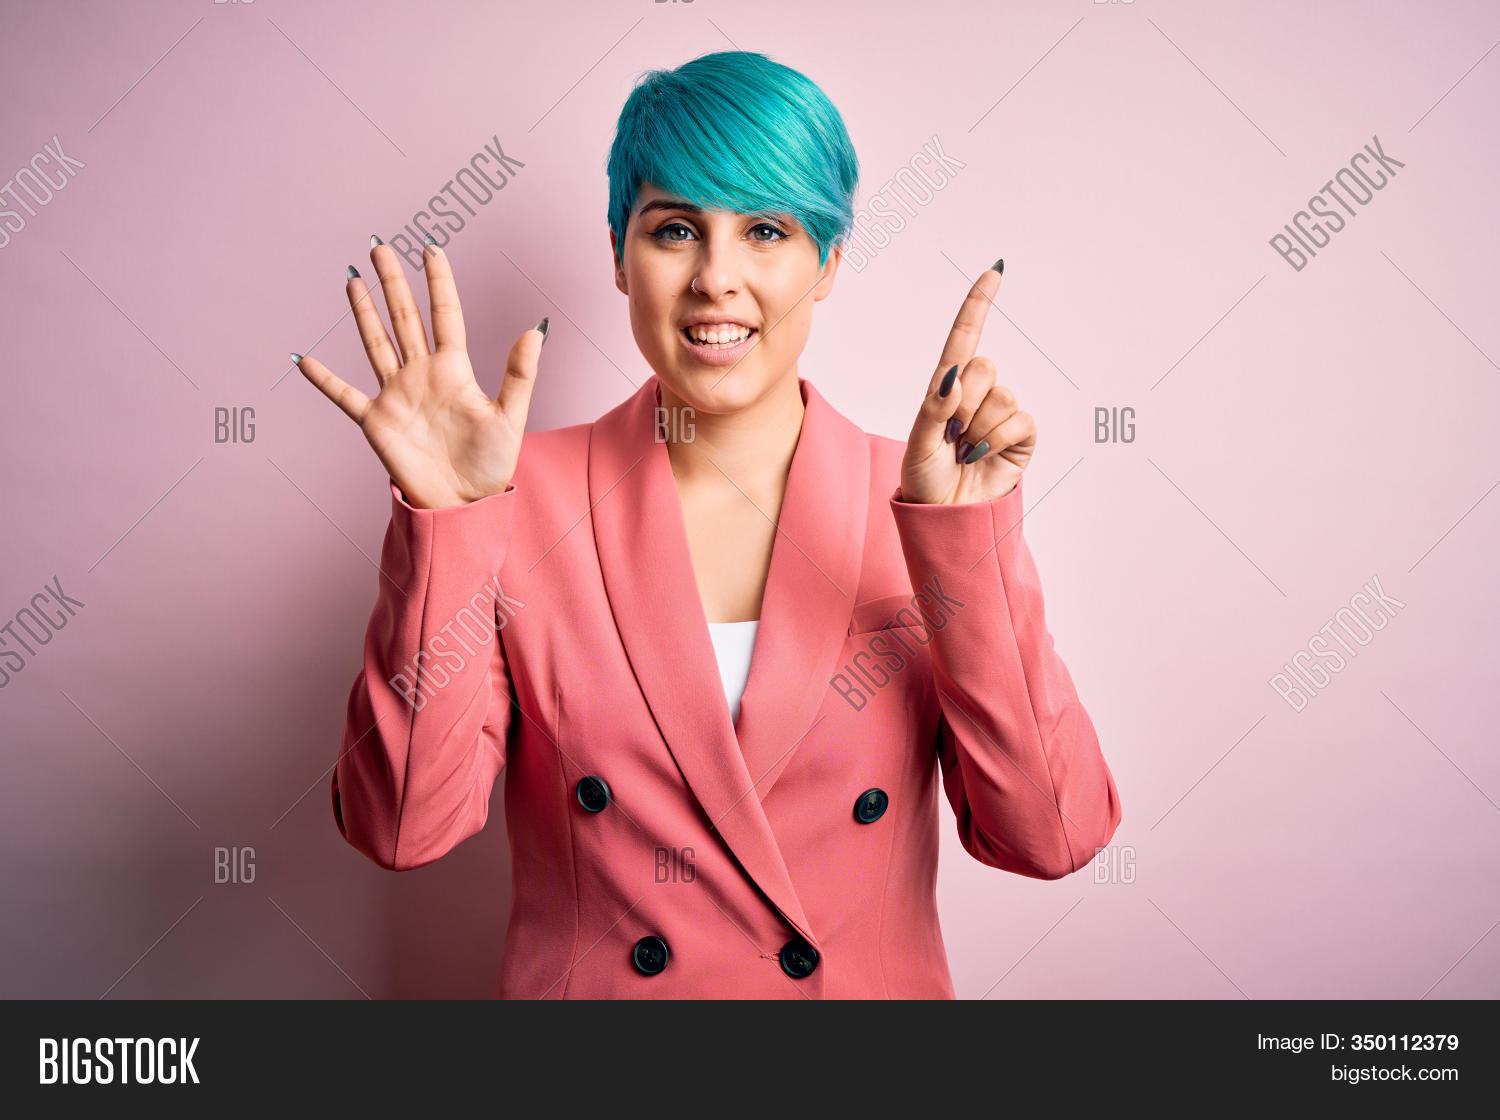 Young beautiful businesswoman with blue fashion hair wearing jacket over pink background showing and pointing up with fingers number six while smiling confident and happy.